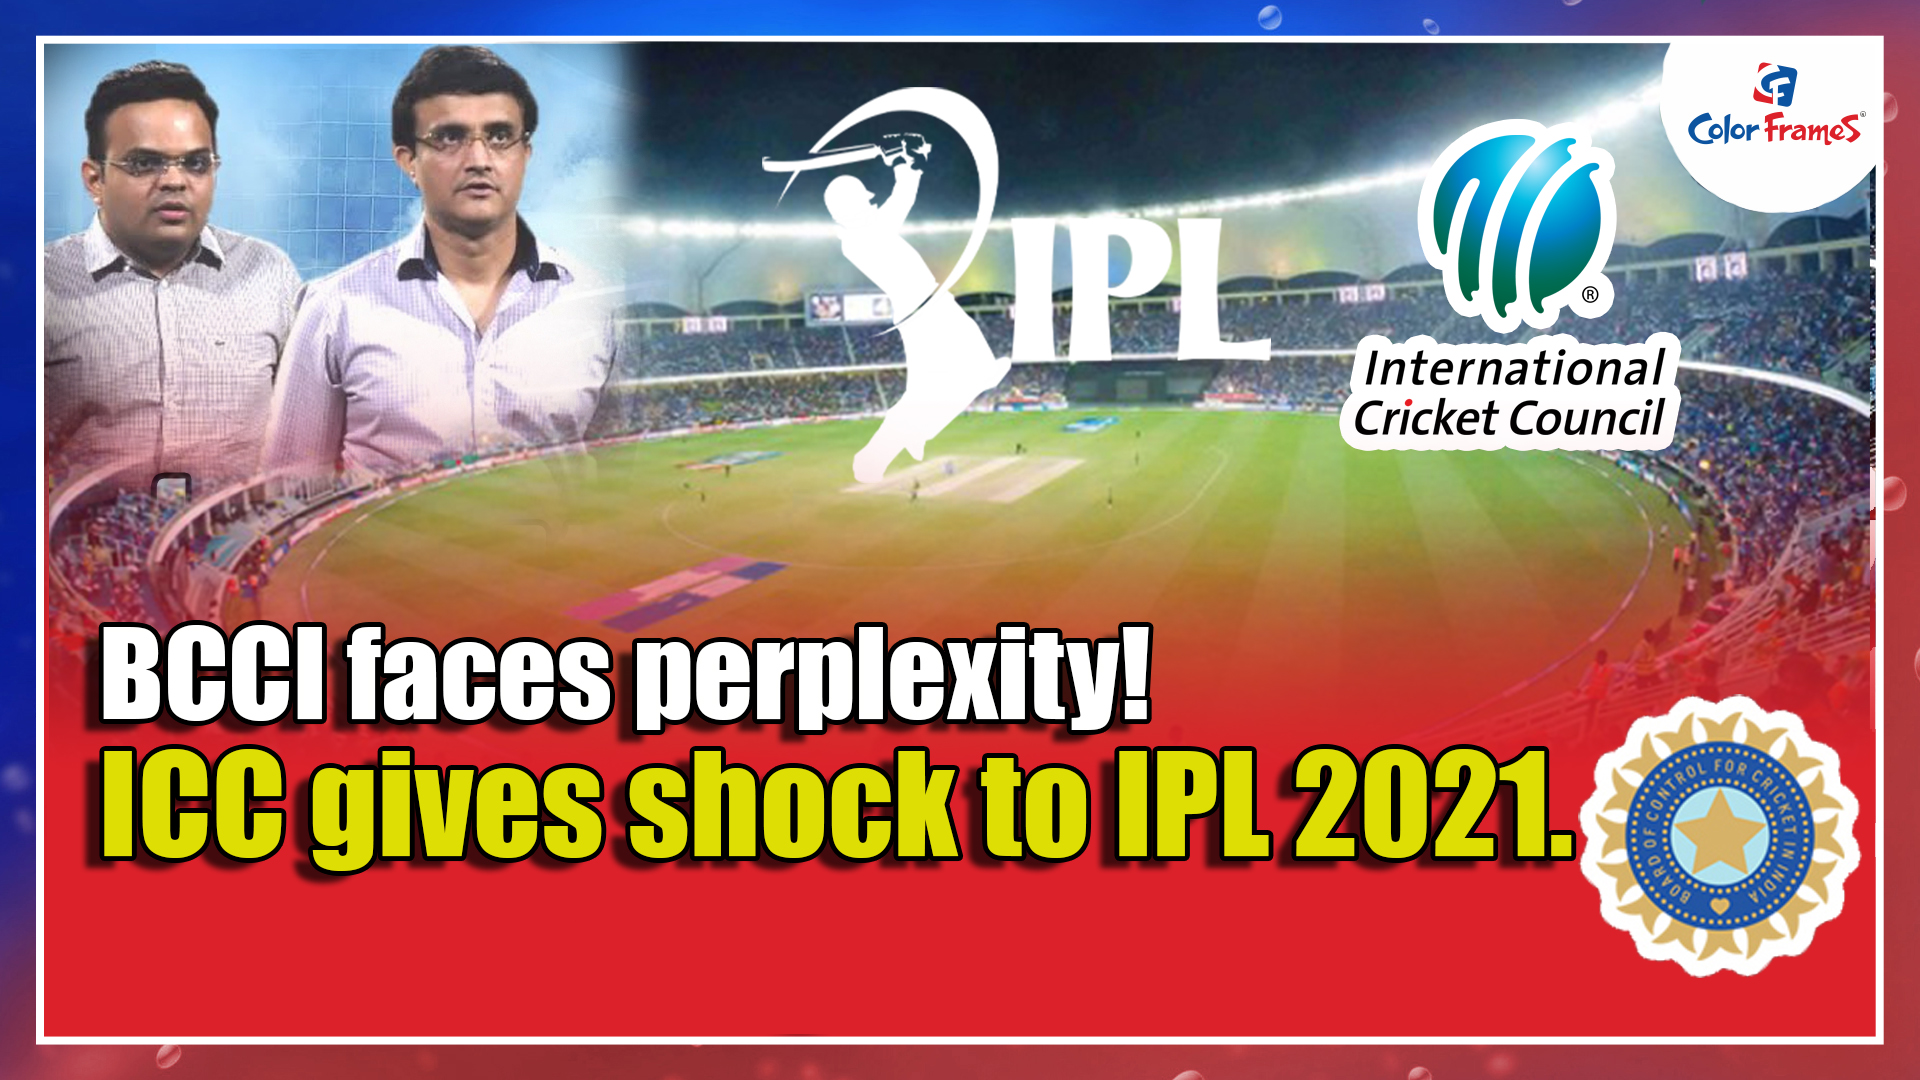 BCCI faces perplexity! ICC gives shock to IPL 2021.